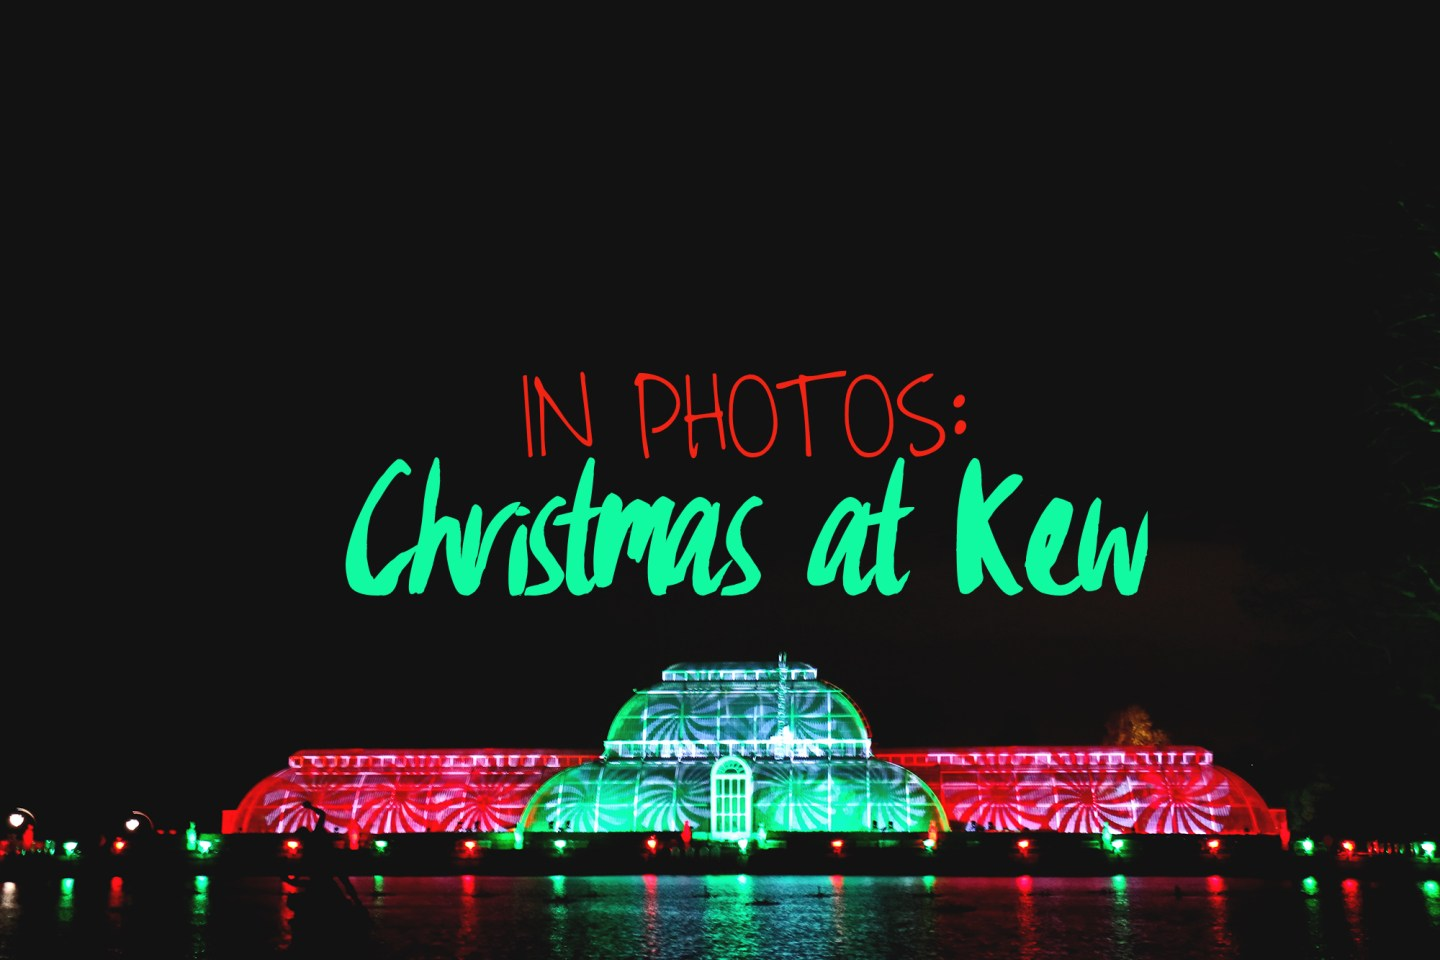 In Photos: Christmas at Kew